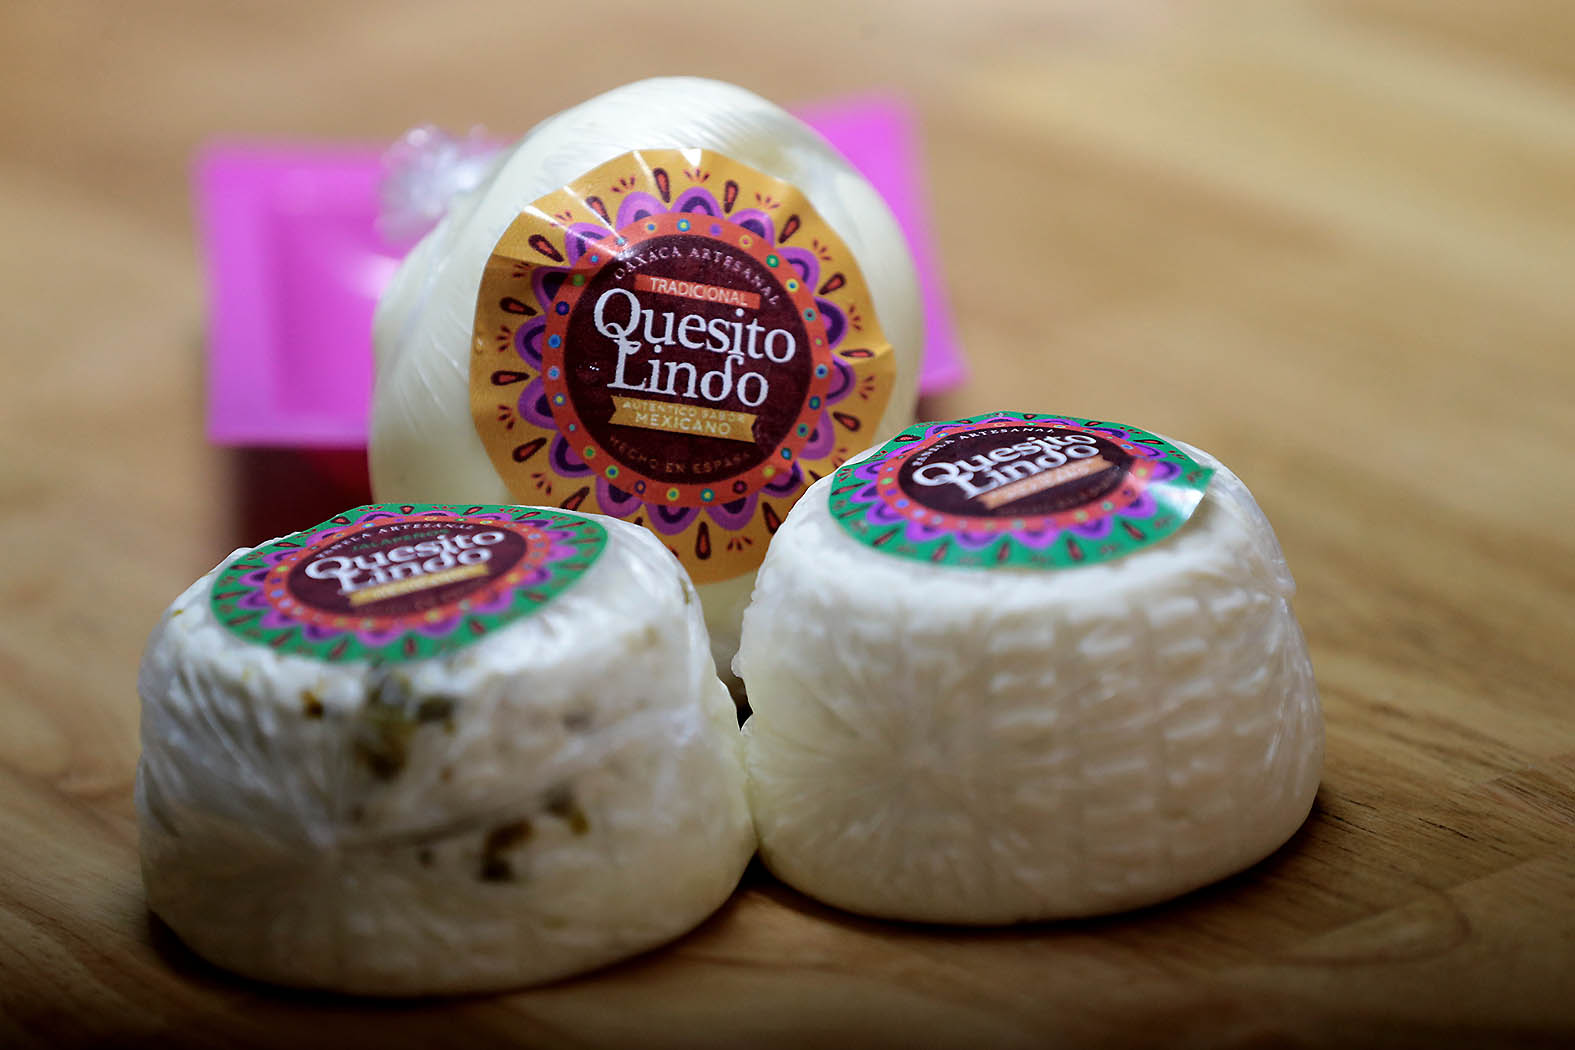 Quesito Lindo fábrica de quesillo mexicano en Madrid, España